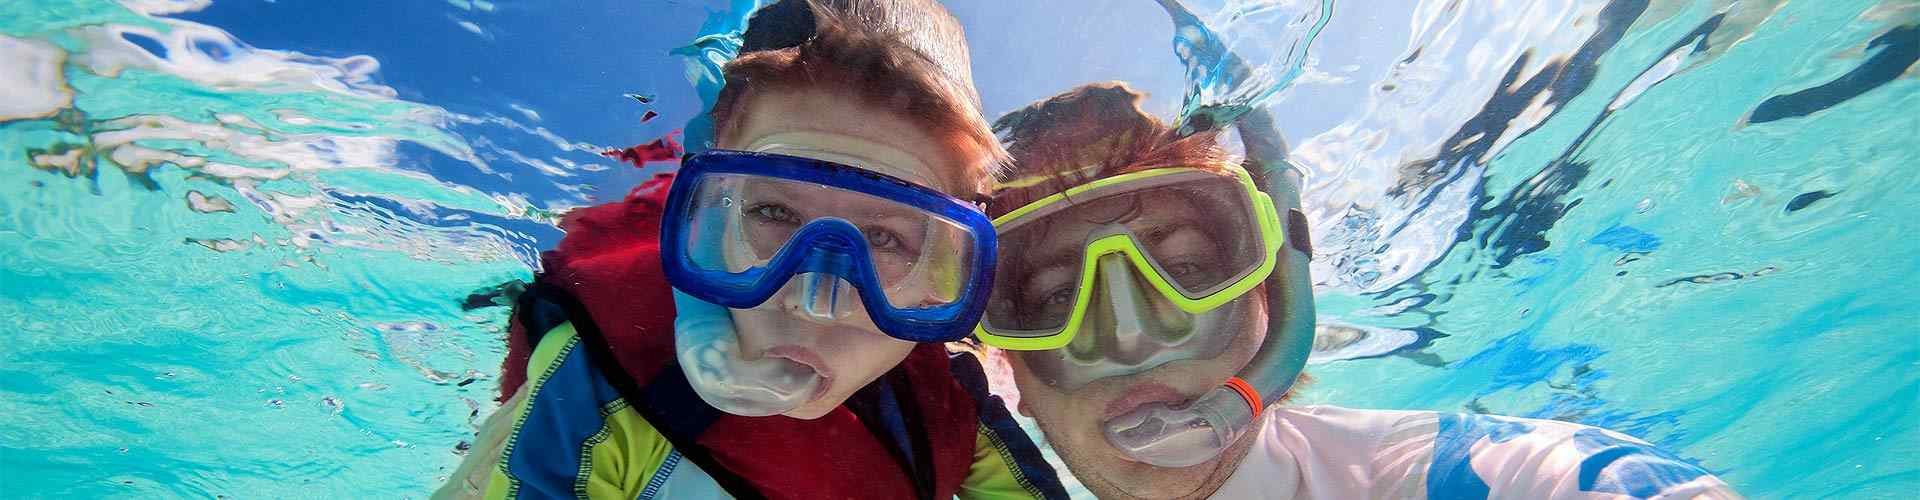 Snorkel en Los Beatos